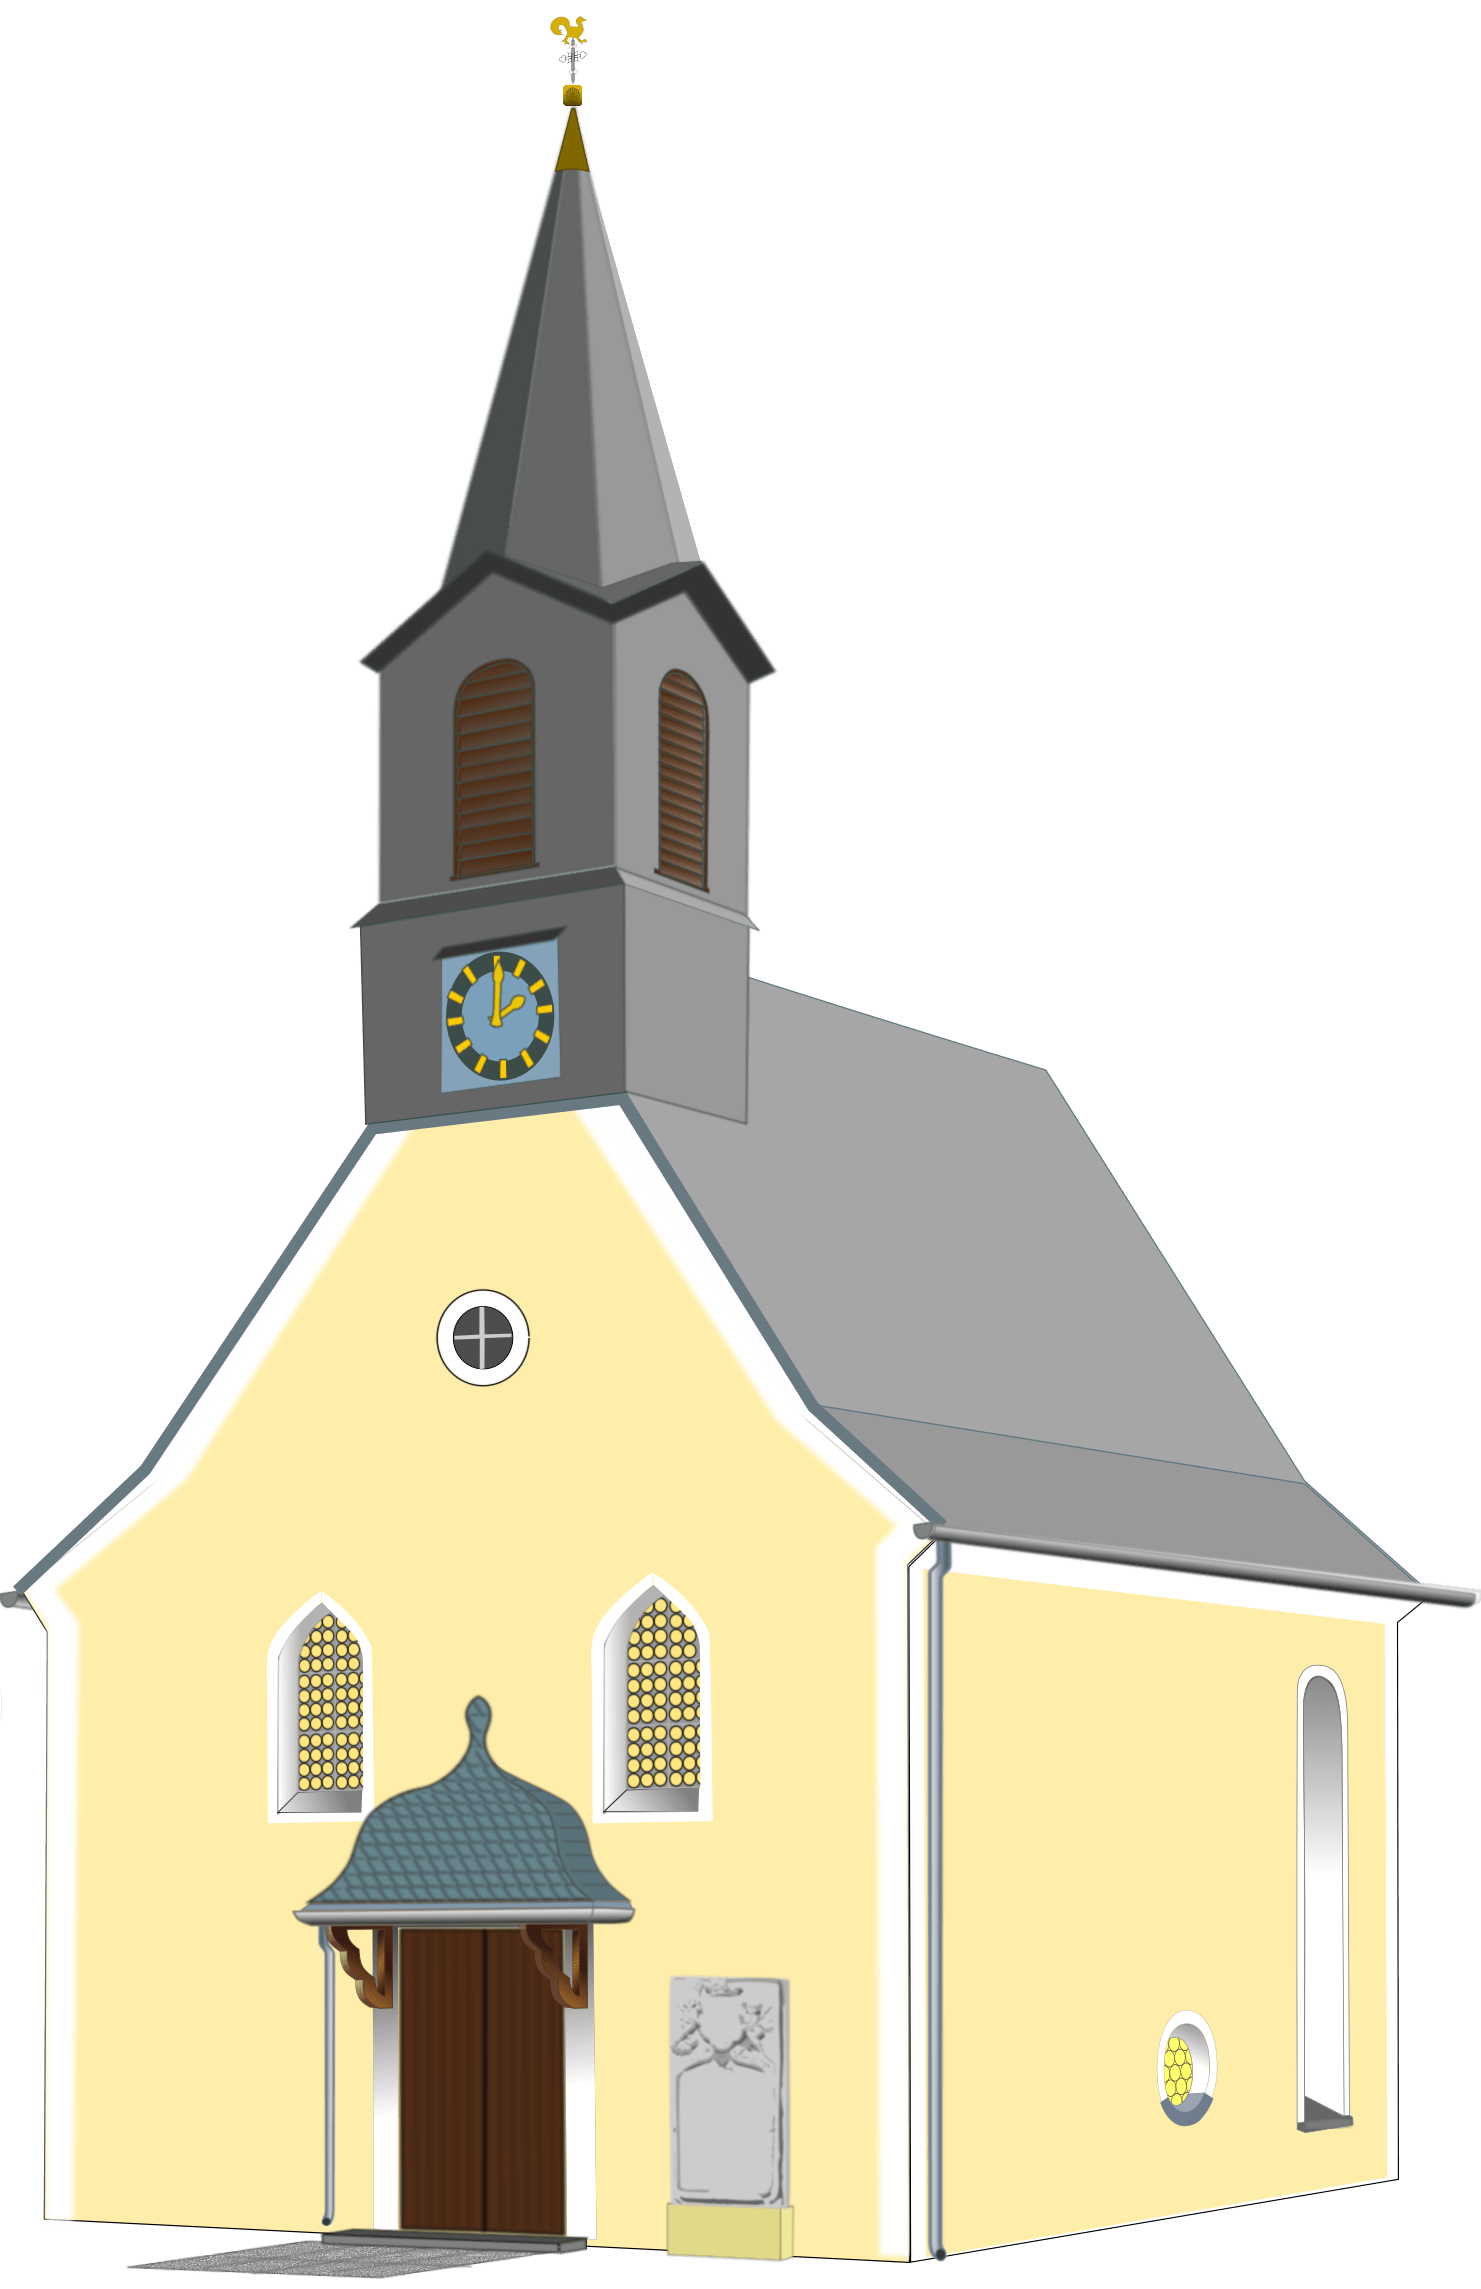 Transparent building church. Small village png stickpng